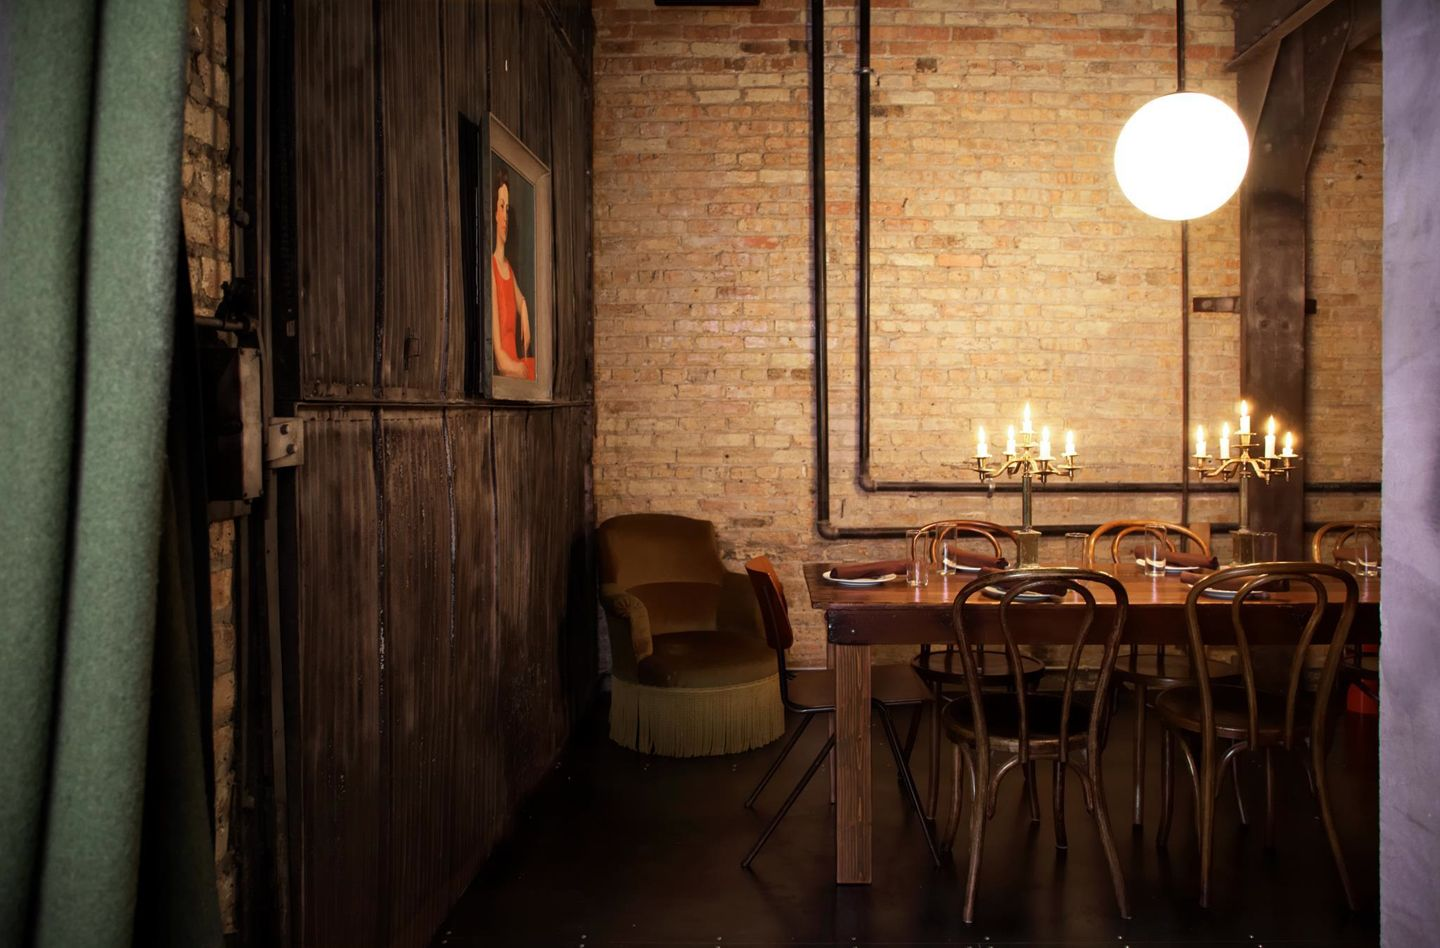 Chicago Restaurants With Private Dining Rooms Beauteous Ada Street New American  Mediterranean Shared Plates Inspiration